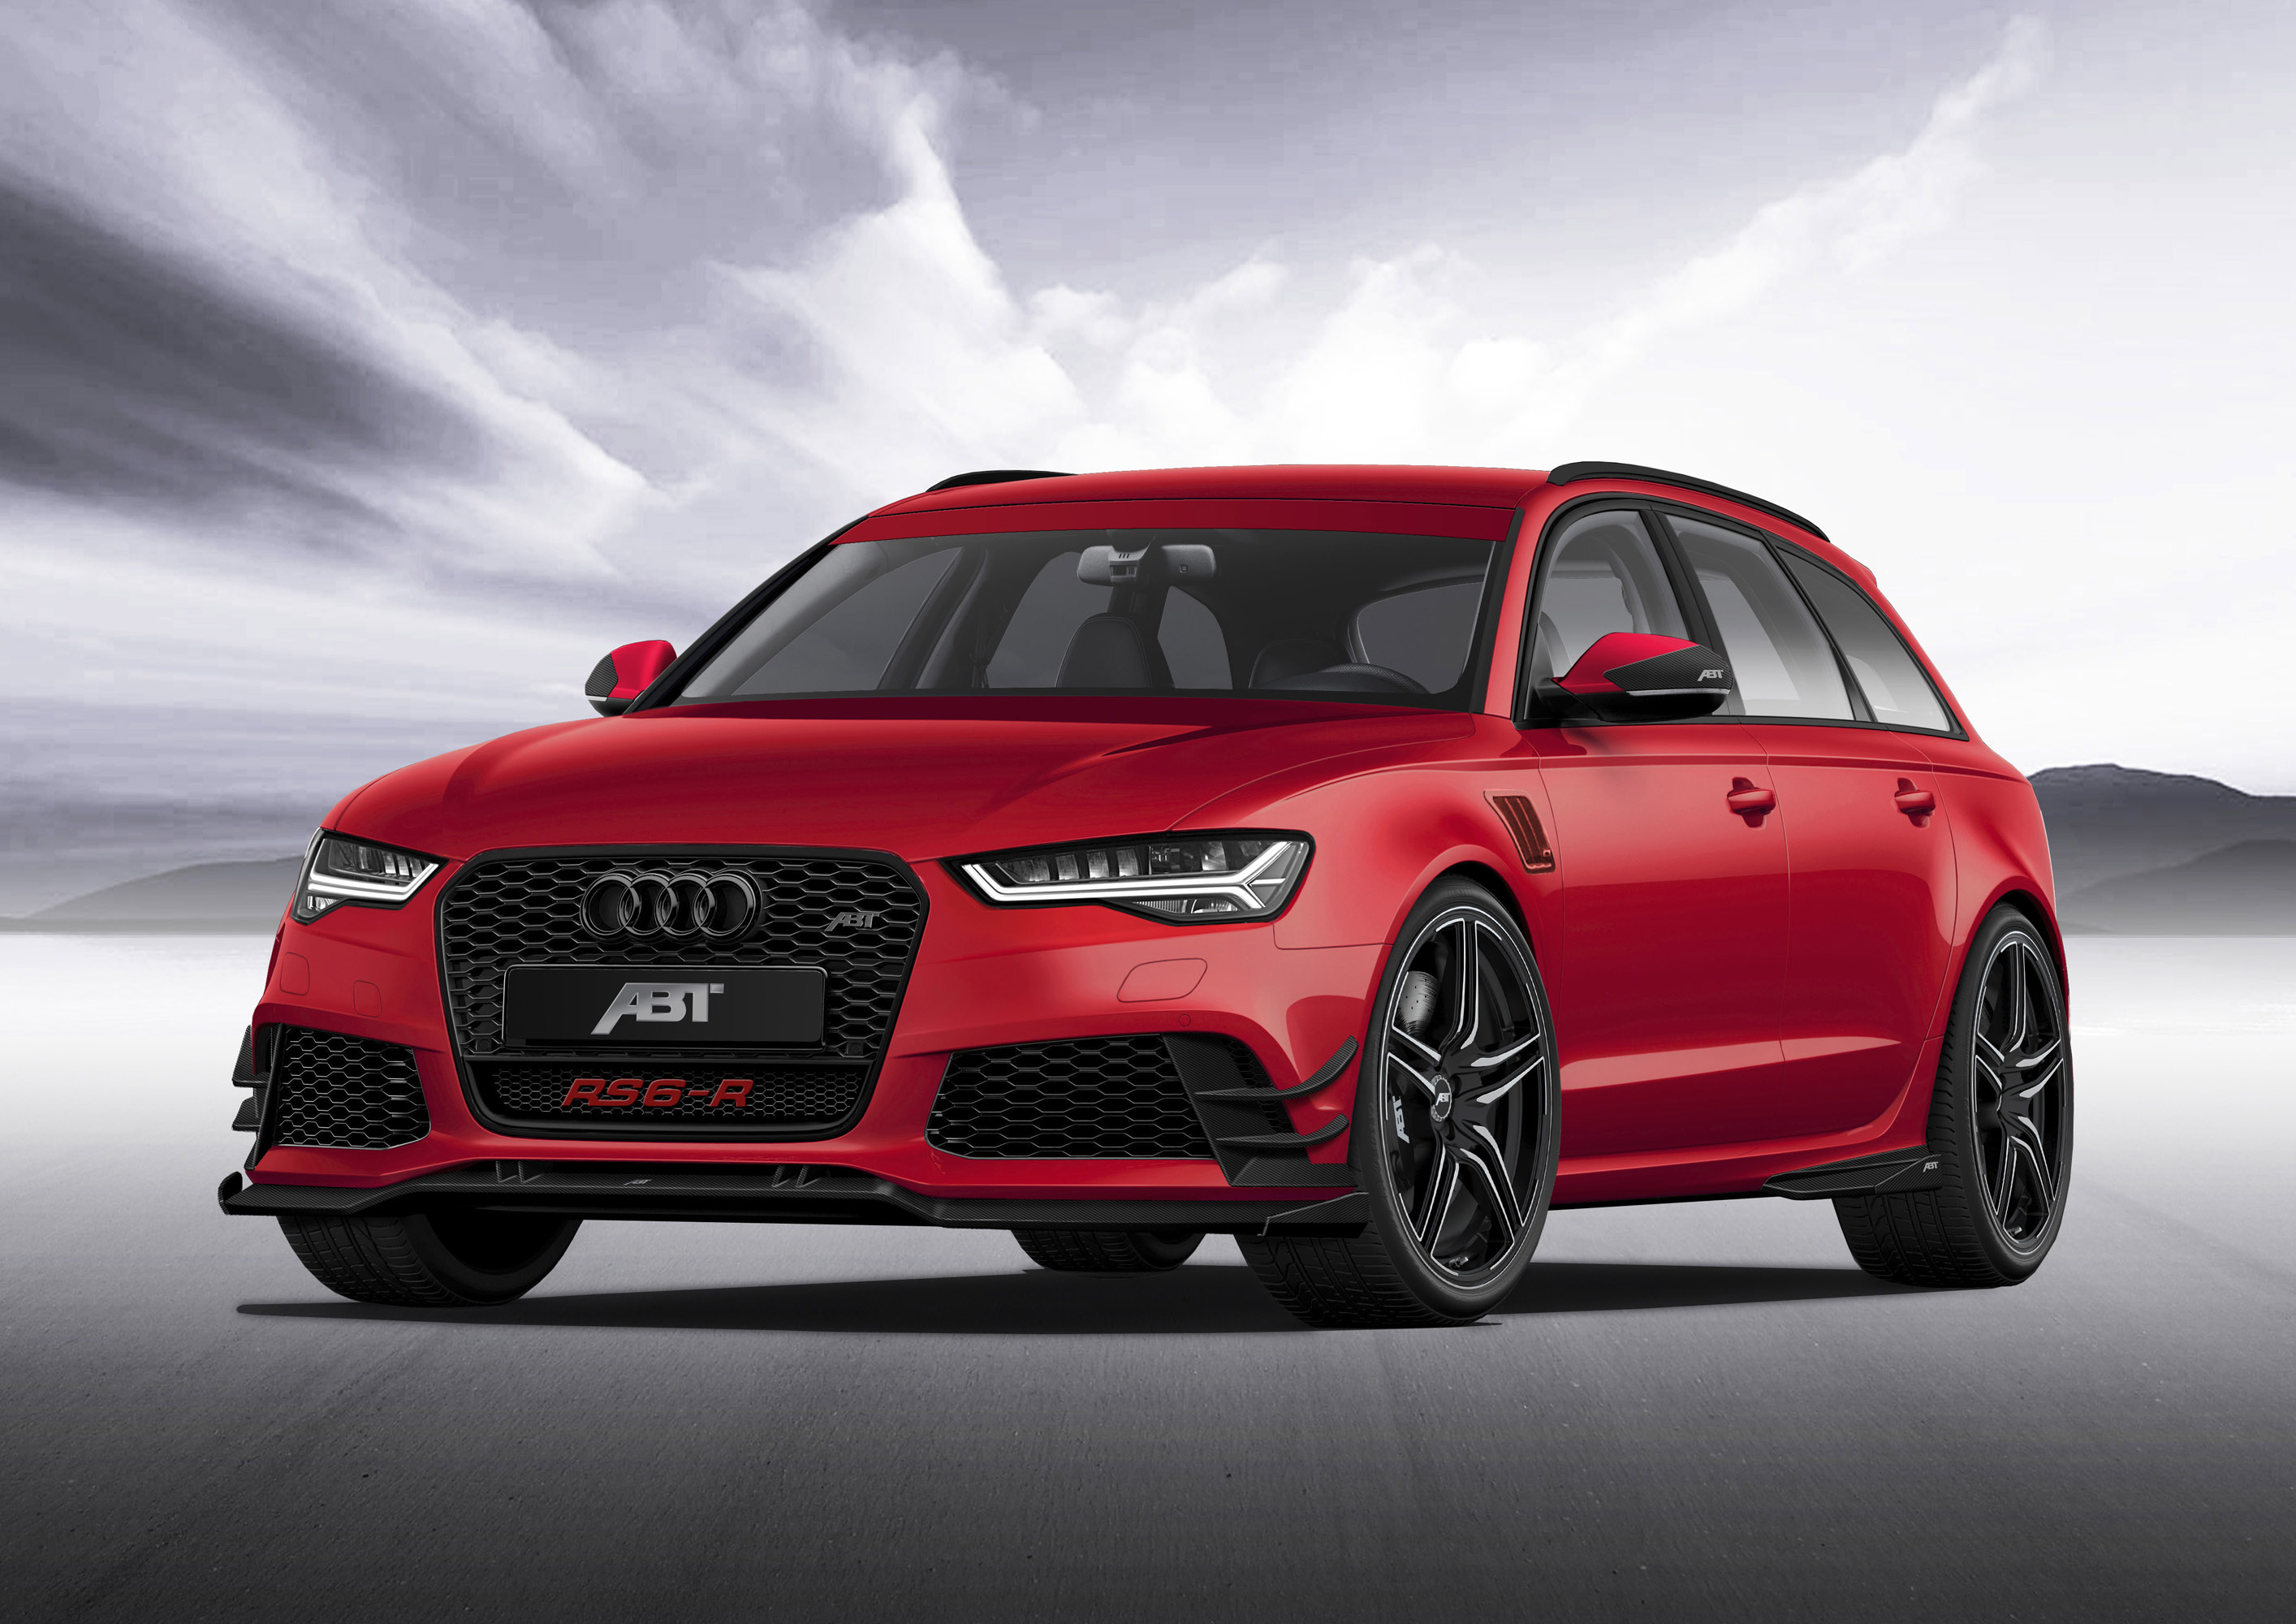 2015 abt audi rs6 r hd pictures. Black Bedroom Furniture Sets. Home Design Ideas